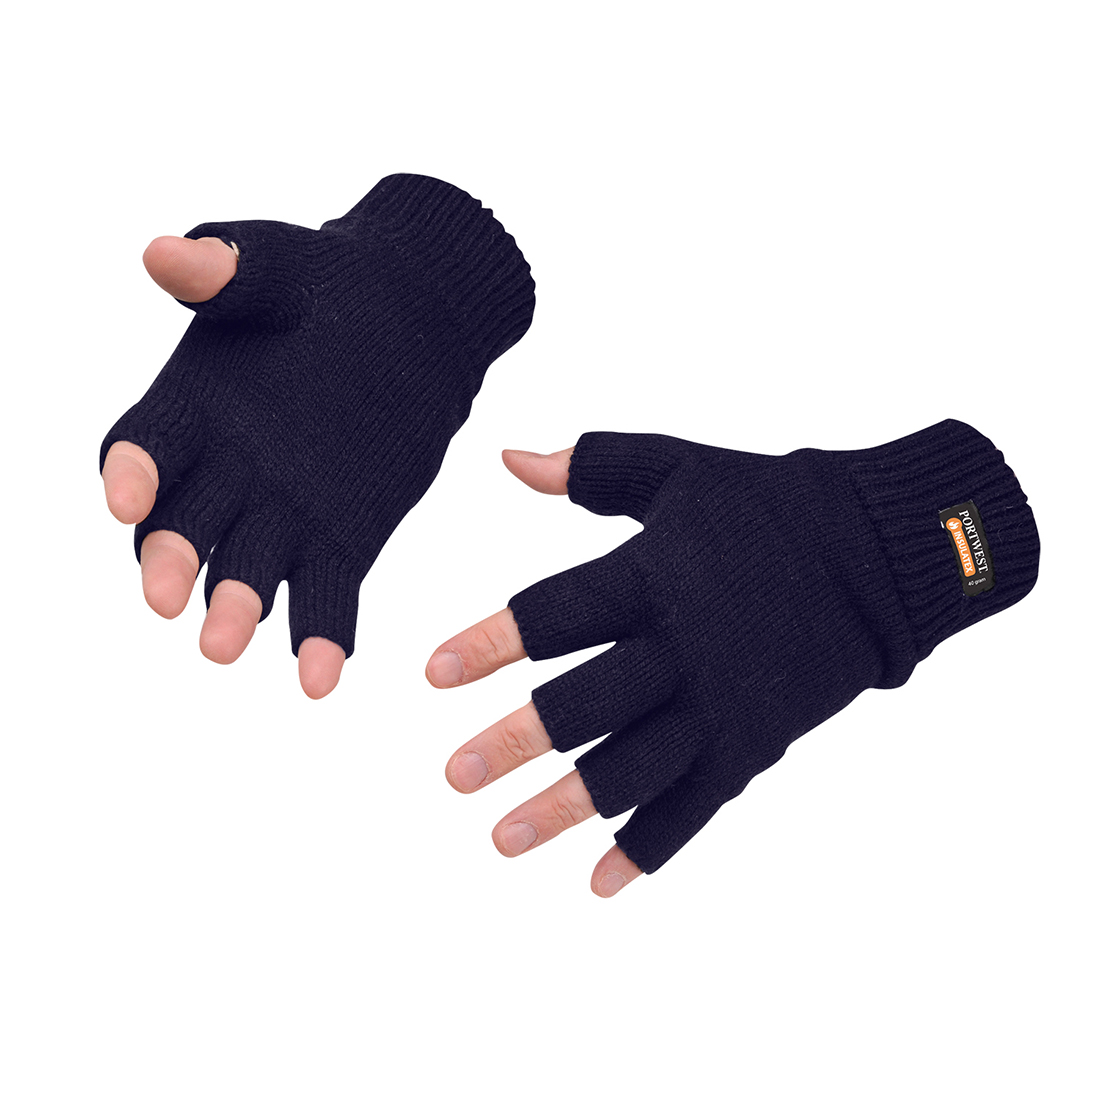 Fingerfreie Insulatex Strick-Handschuhe